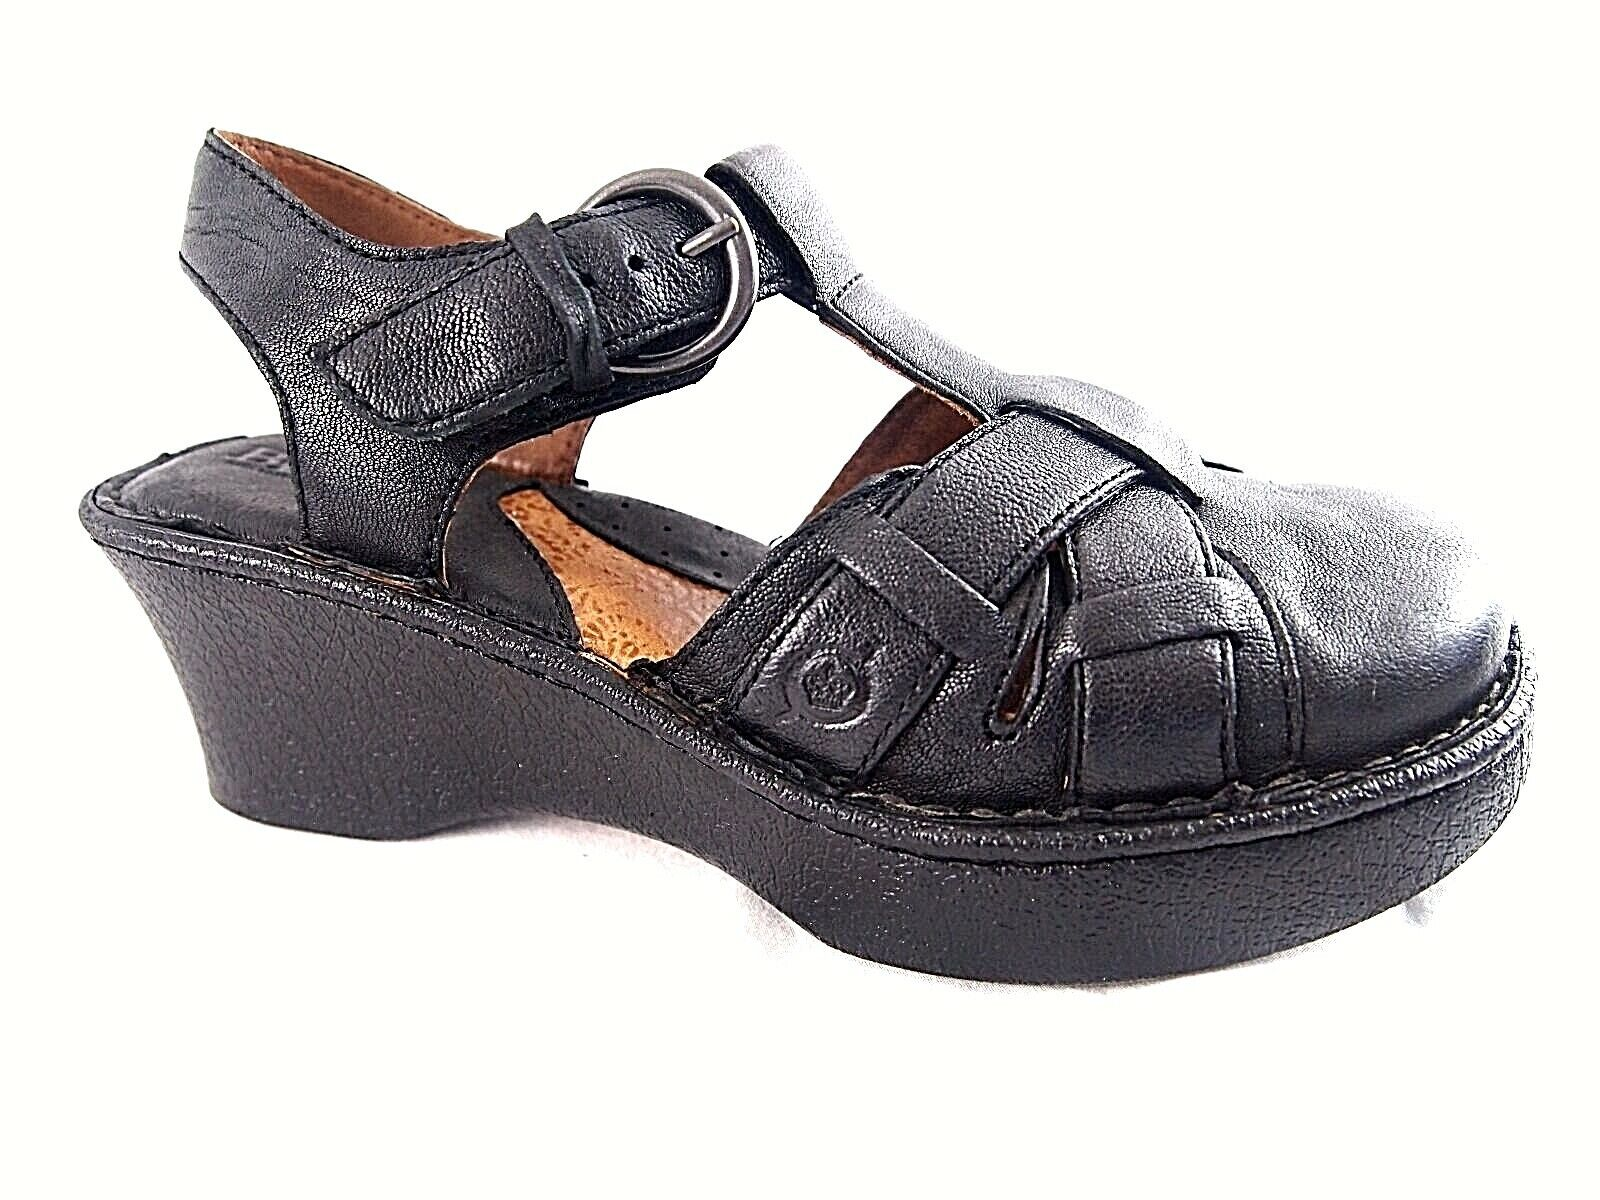 Born Shoes Black Leather Wedge Clogs Strappy Sandal Comfort BUCKLE Womens 7 M 38